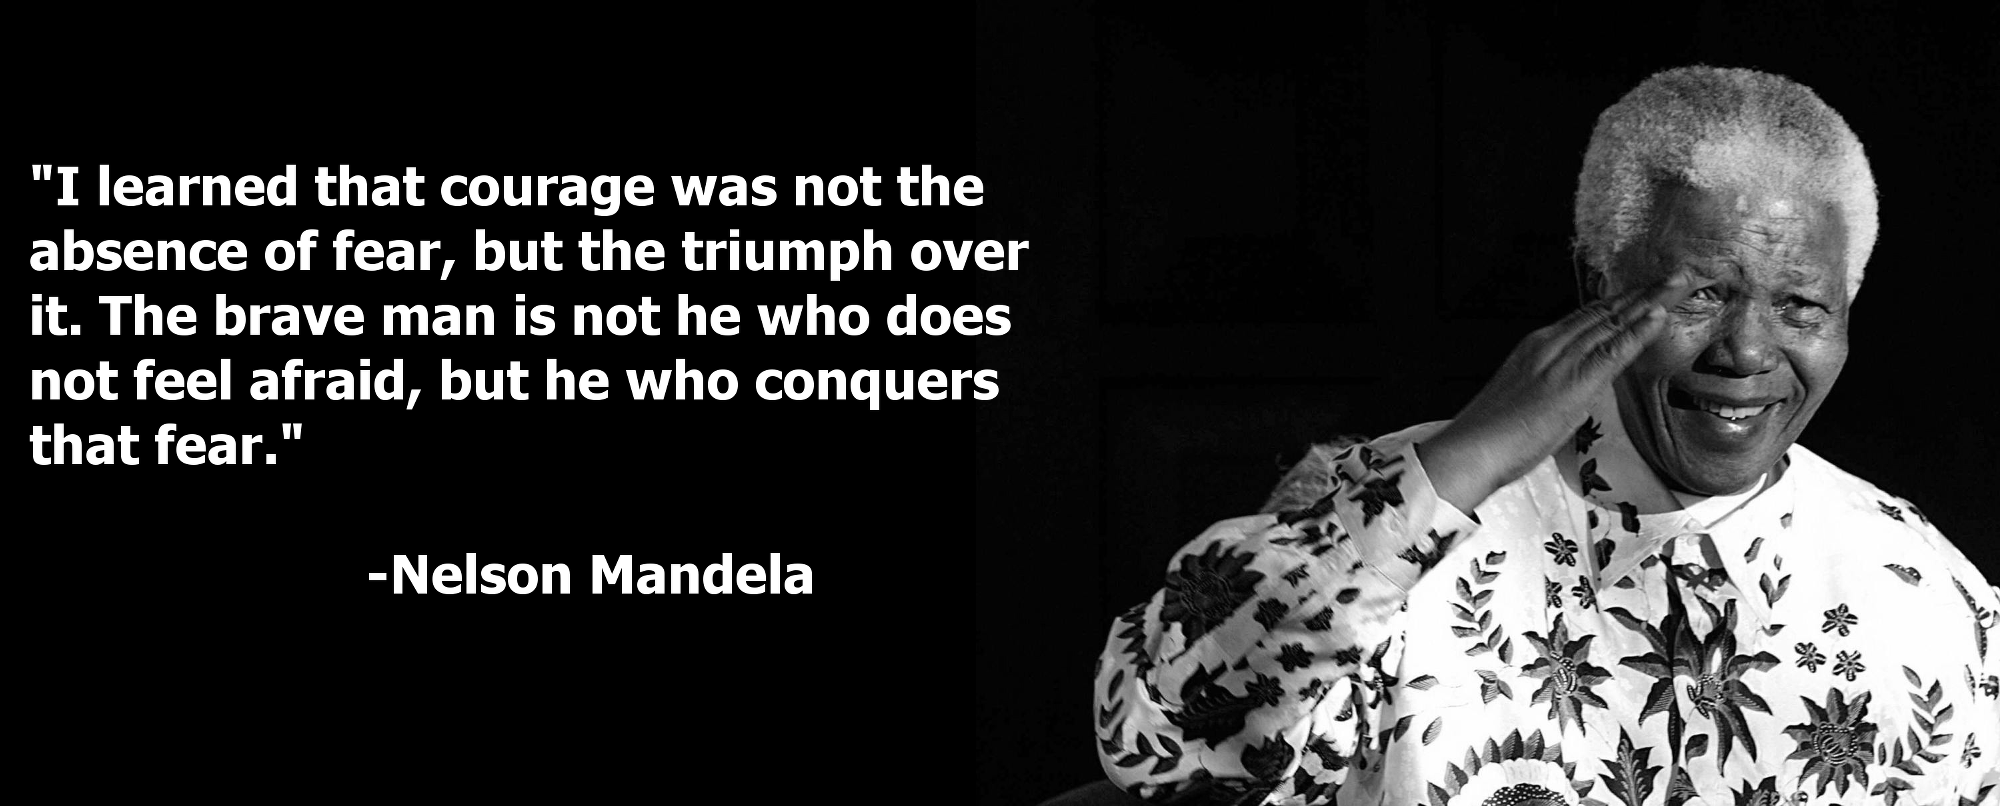 Servant Leadership Quotes Captivating Nelson Mandela  8 Of The Greatest Servant Leadership Quotes And